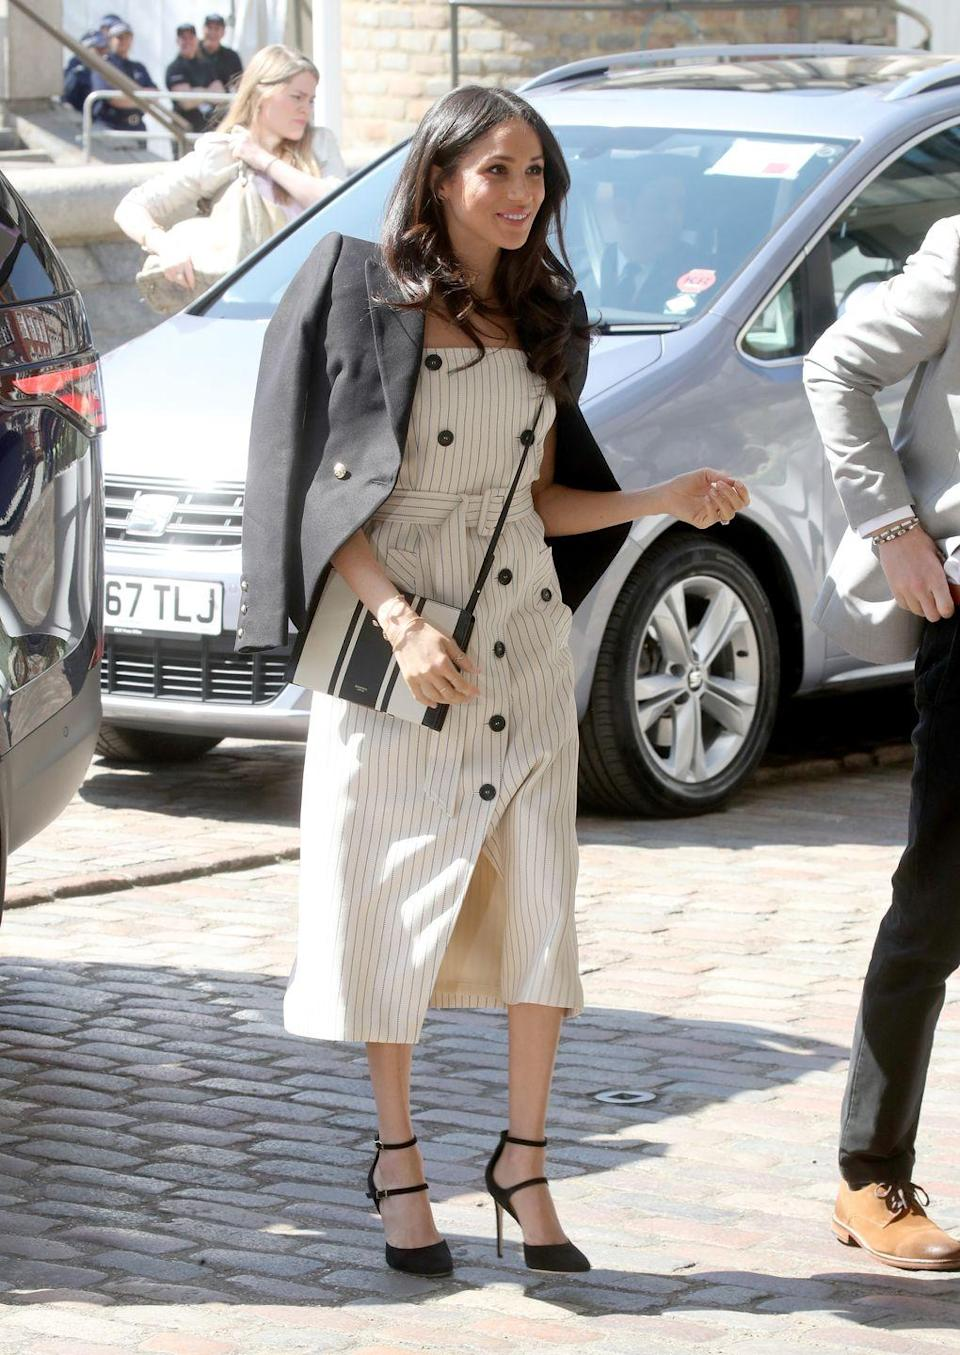 """<p>For the Commonwealth Youth Forum reception, Markle stepped out in a midi dress with buttons from <a href=""""https://go.redirectingat.com?id=74968X1596630&url=https%3A%2F%2Fwww.net-a-porter.com%2Fus%2Fen%2Fproduct%2F993797&sref=https%3A%2F%2Fwww.townandcountrymag.com%2Fstyle%2Ffashion-trends%2Fg3272%2Fmeghan-markle-preppy-style%2F"""" rel=""""nofollow noopener"""" target=""""_blank"""" data-ylk=""""slk:Altuzarra"""" class=""""link rapid-noclick-resp"""">Altuzarra</a>, a black blazer by <a href=""""https://go.redirectingat.com?id=74968X1596630&url=https%3A%2F%2Fwww.camillaandmarc.com%2Fdimmer-blazer-black-26027.html&sref=https%3A%2F%2Fwww.townandcountrymag.com%2Fstyle%2Ffashion-trends%2Fg3272%2Fmeghan-markle-preppy-style%2F"""" rel=""""nofollow noopener"""" target=""""_blank"""" data-ylk=""""slk:Camilla and Marc"""" class=""""link rapid-noclick-resp"""">Camilla and Marc</a>, and sky-high stilettos heels. </p>"""